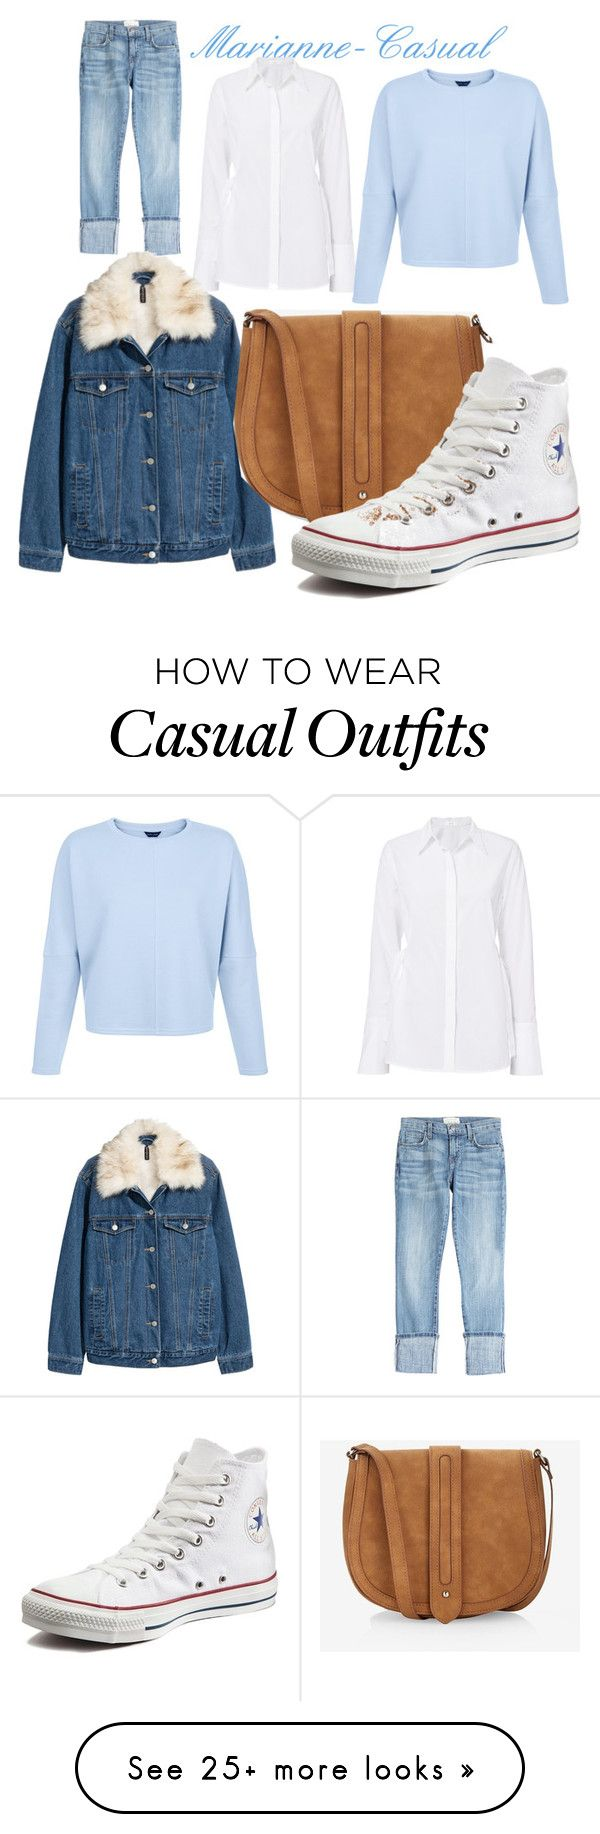 """Marianne-Casual"" by rachel-lesch on Polyvore featuring A.L.C., Current/Elliott, H&M, Express and Converse"